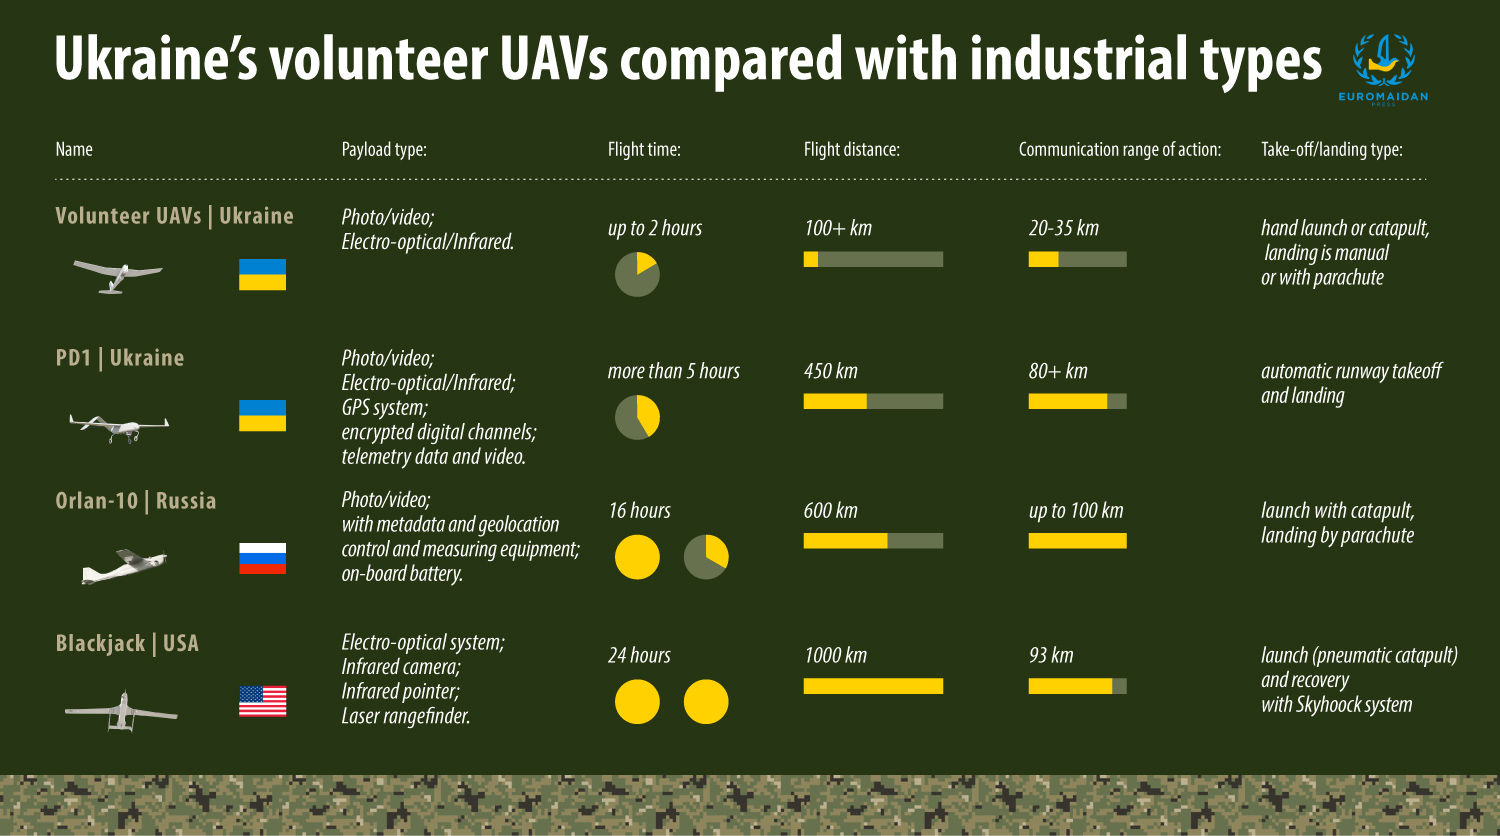 We compared the average characteristics of the UAVs provided to the Ukrainian army by volunteers, the PD-1 UAVs made professionally for an order of the Ministry of Defense of Ukraine and the Russian and the US UAVs of the same class as PD-1